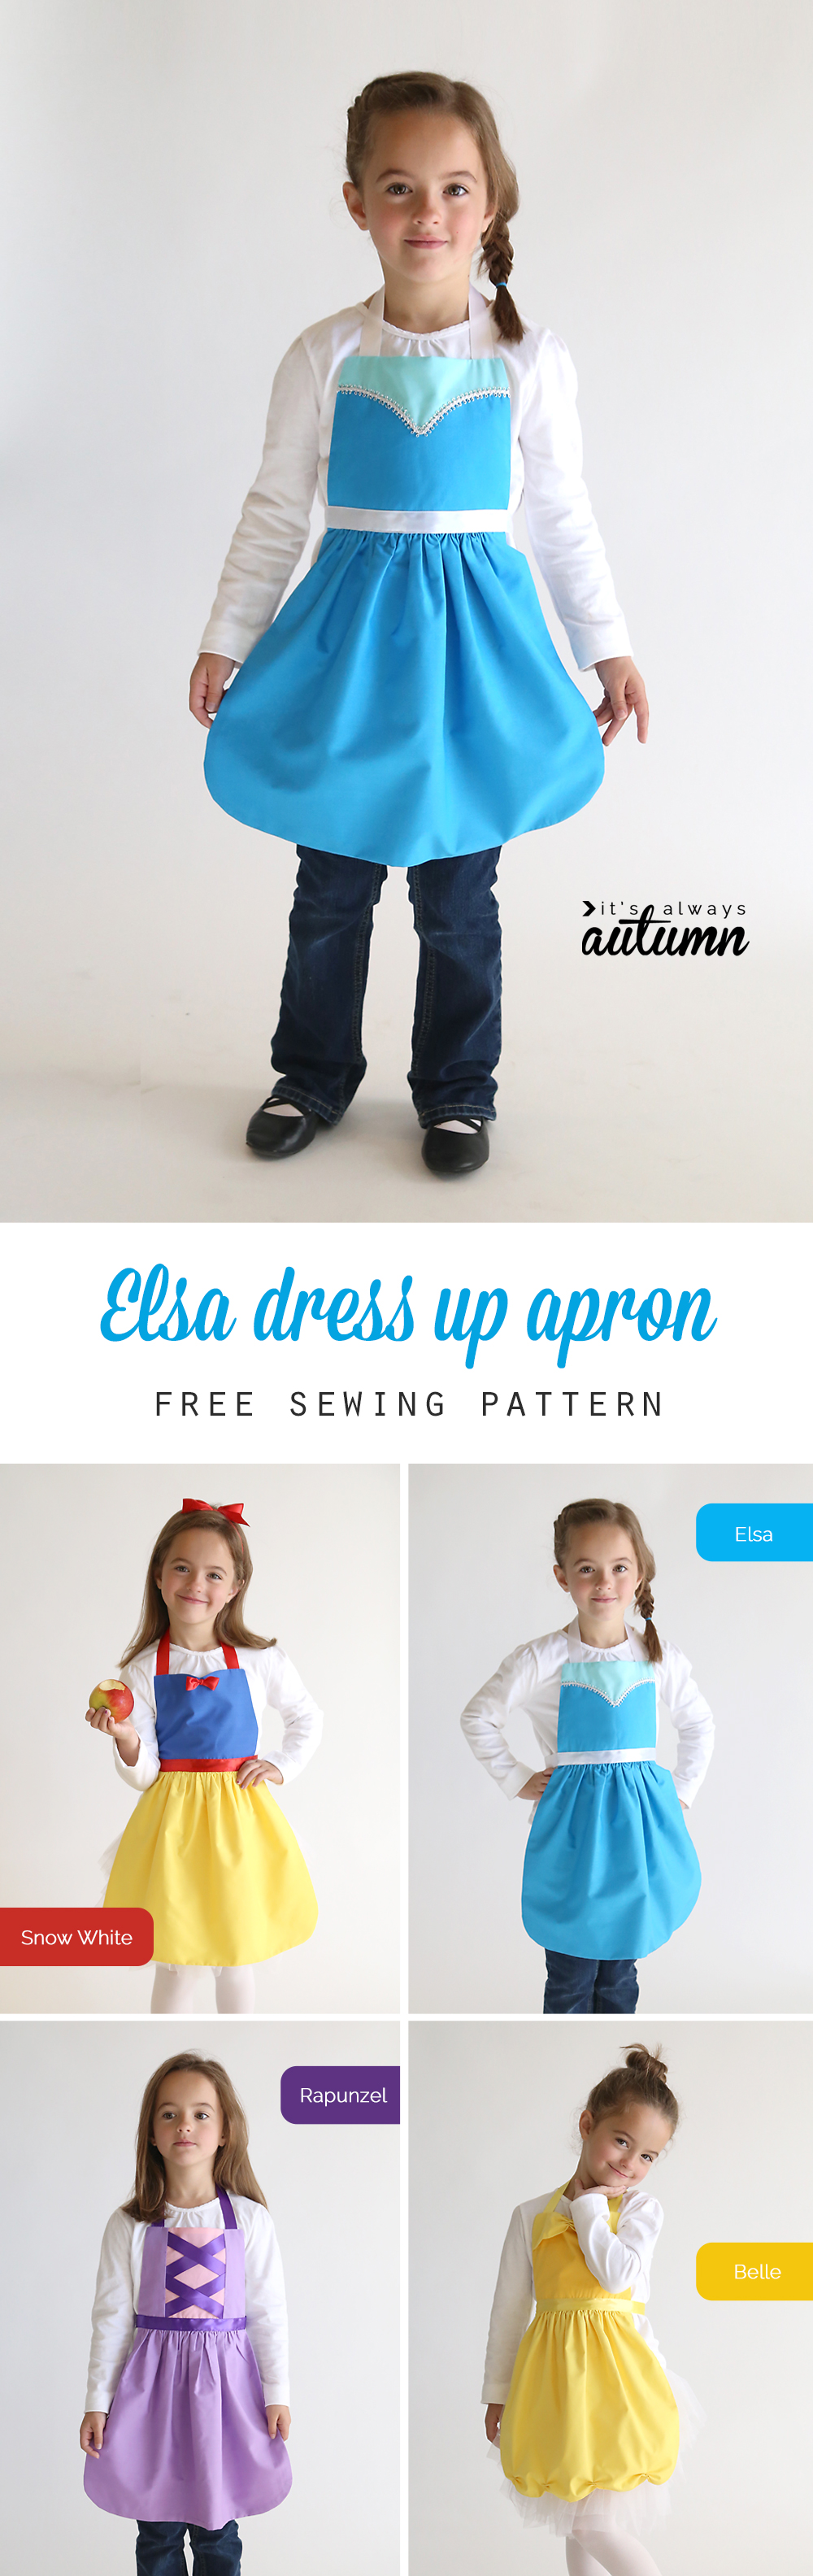 So adorable! Get the free PDF sewing pattern for this easy to make Elsa (Frozen) princess dress up apron in sizes 2-8 to fit any little girl! Easy DIY Snow White costume or dress up. Great handmade Christmas gift idea. More princess dress up apron patterns on this site too!